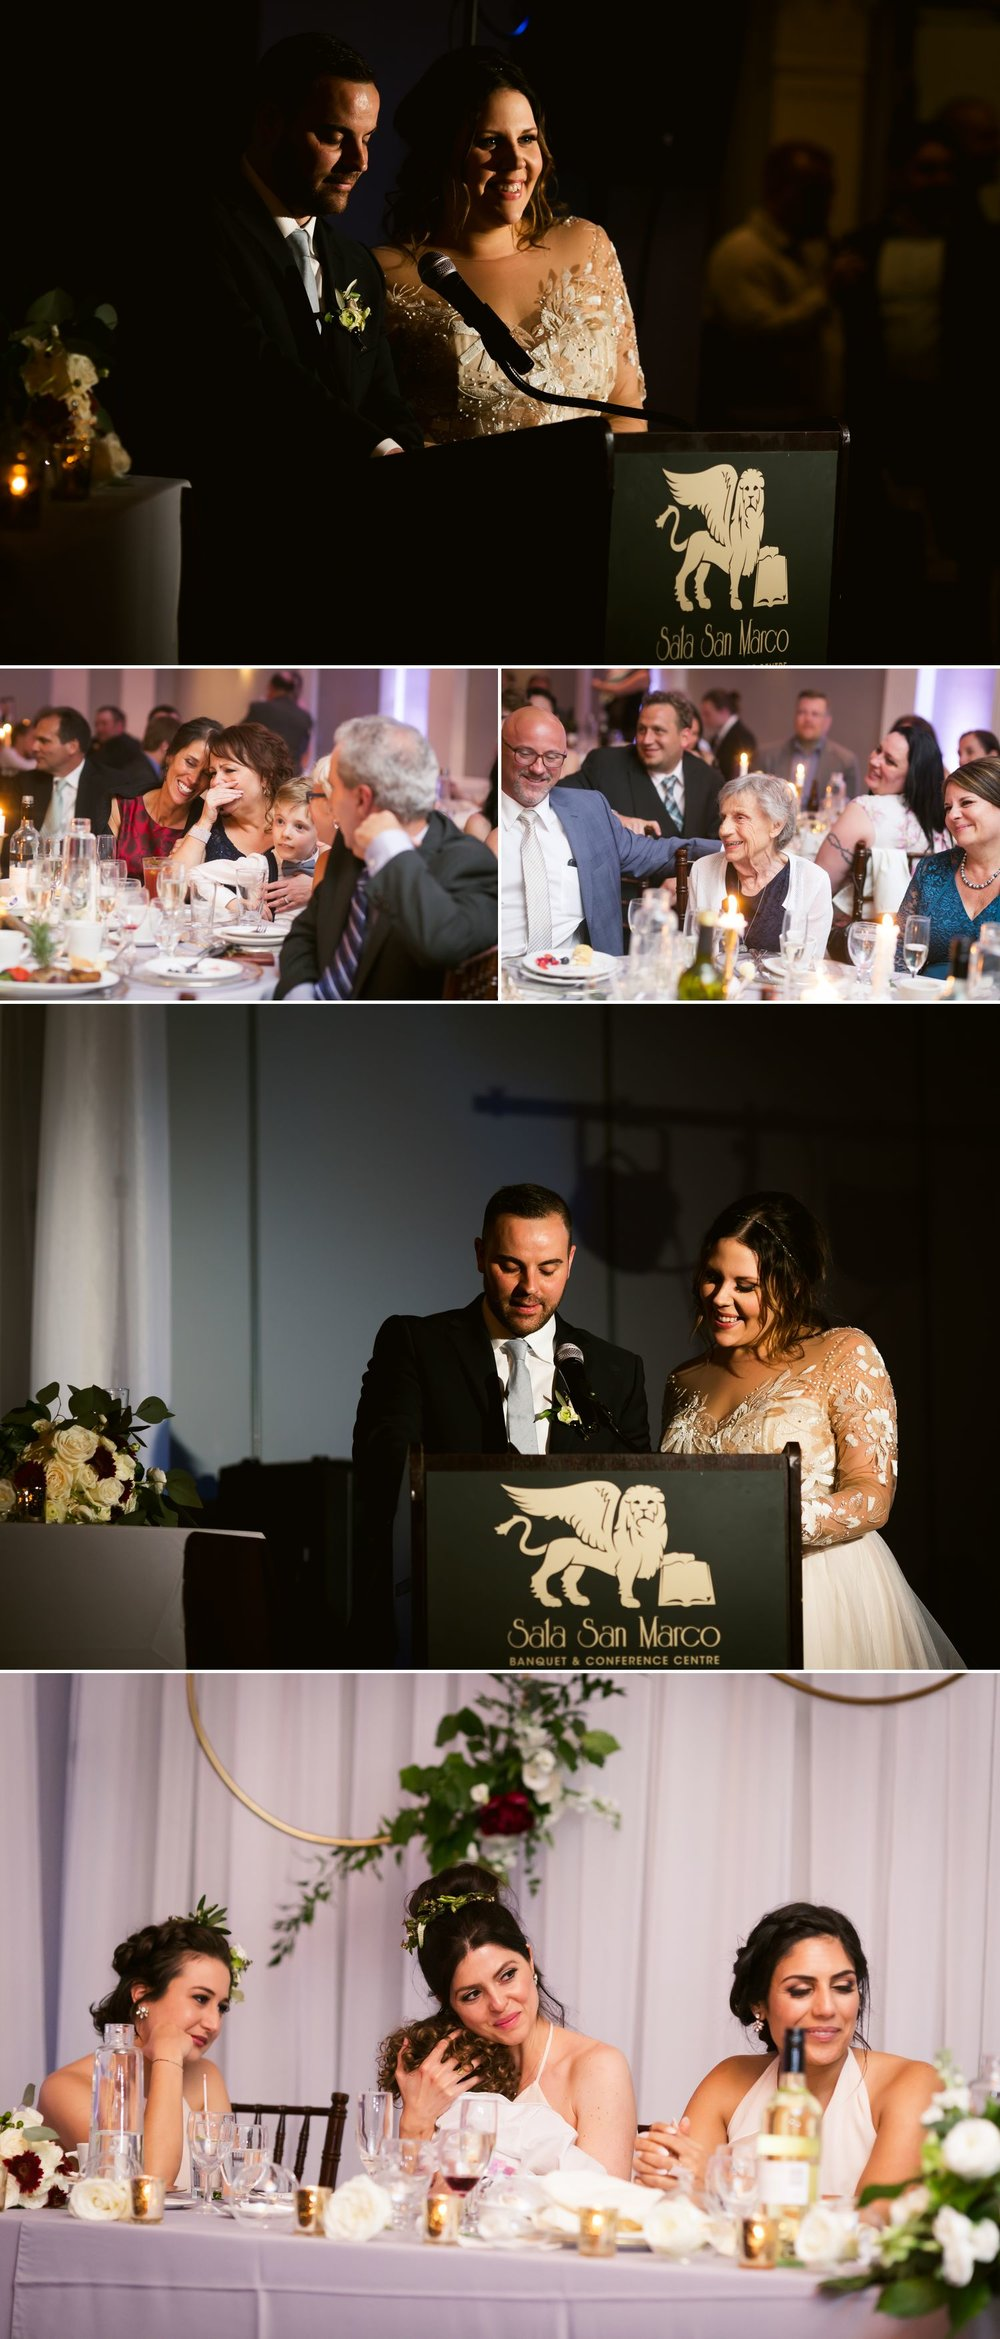 The bride and groom giving their wedding speech during their reception at Sala San Marco in Ottawa